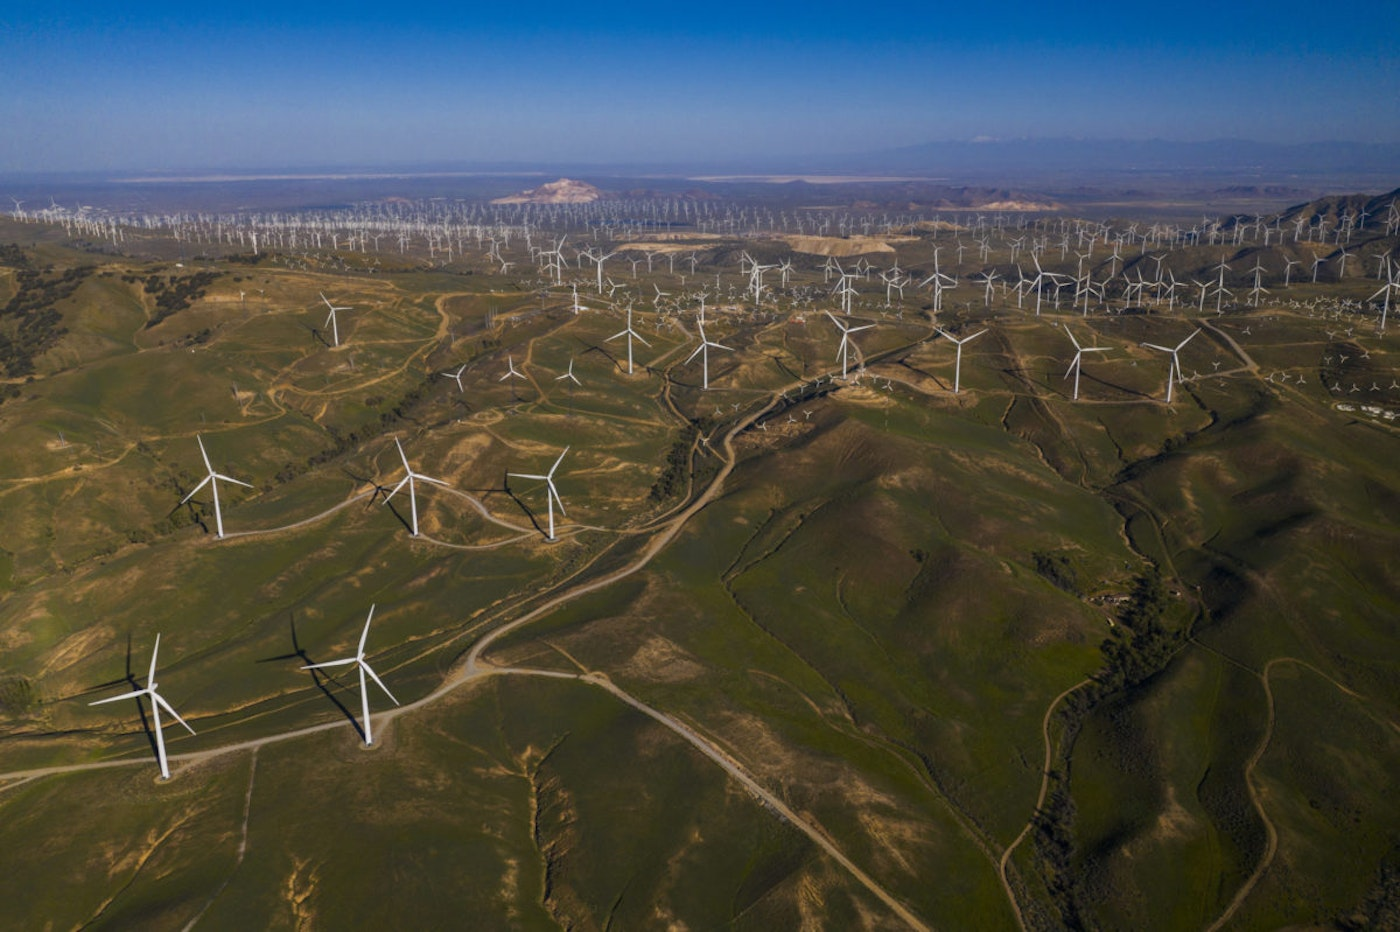 President Trump has openly declared his hatred of windmills—but while his arguments have no basis in scientific reality, they mask a deeper failure of his administration to address climate change or embrace science.